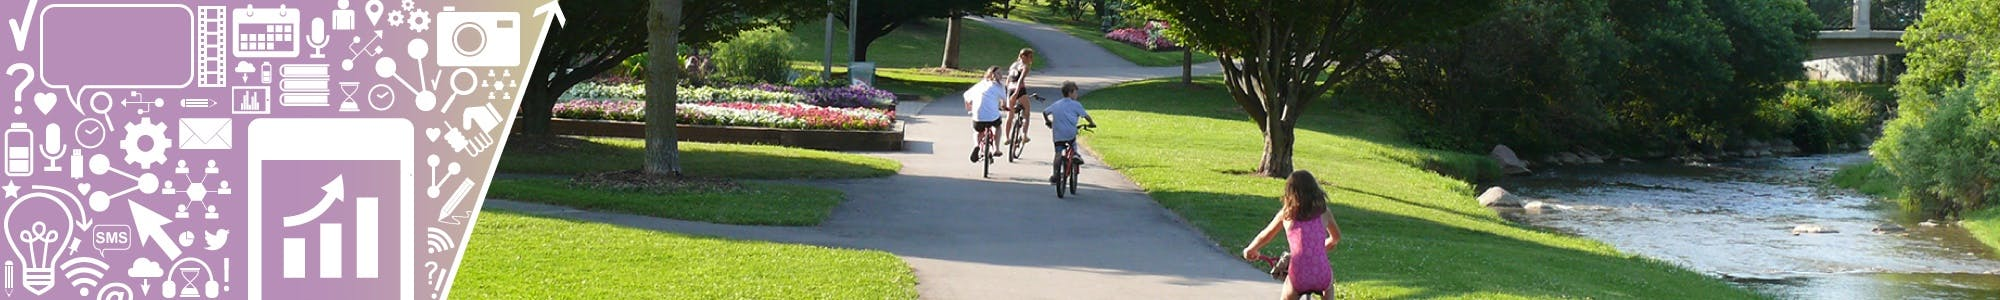 Children ride their bikes through an Oshawa park